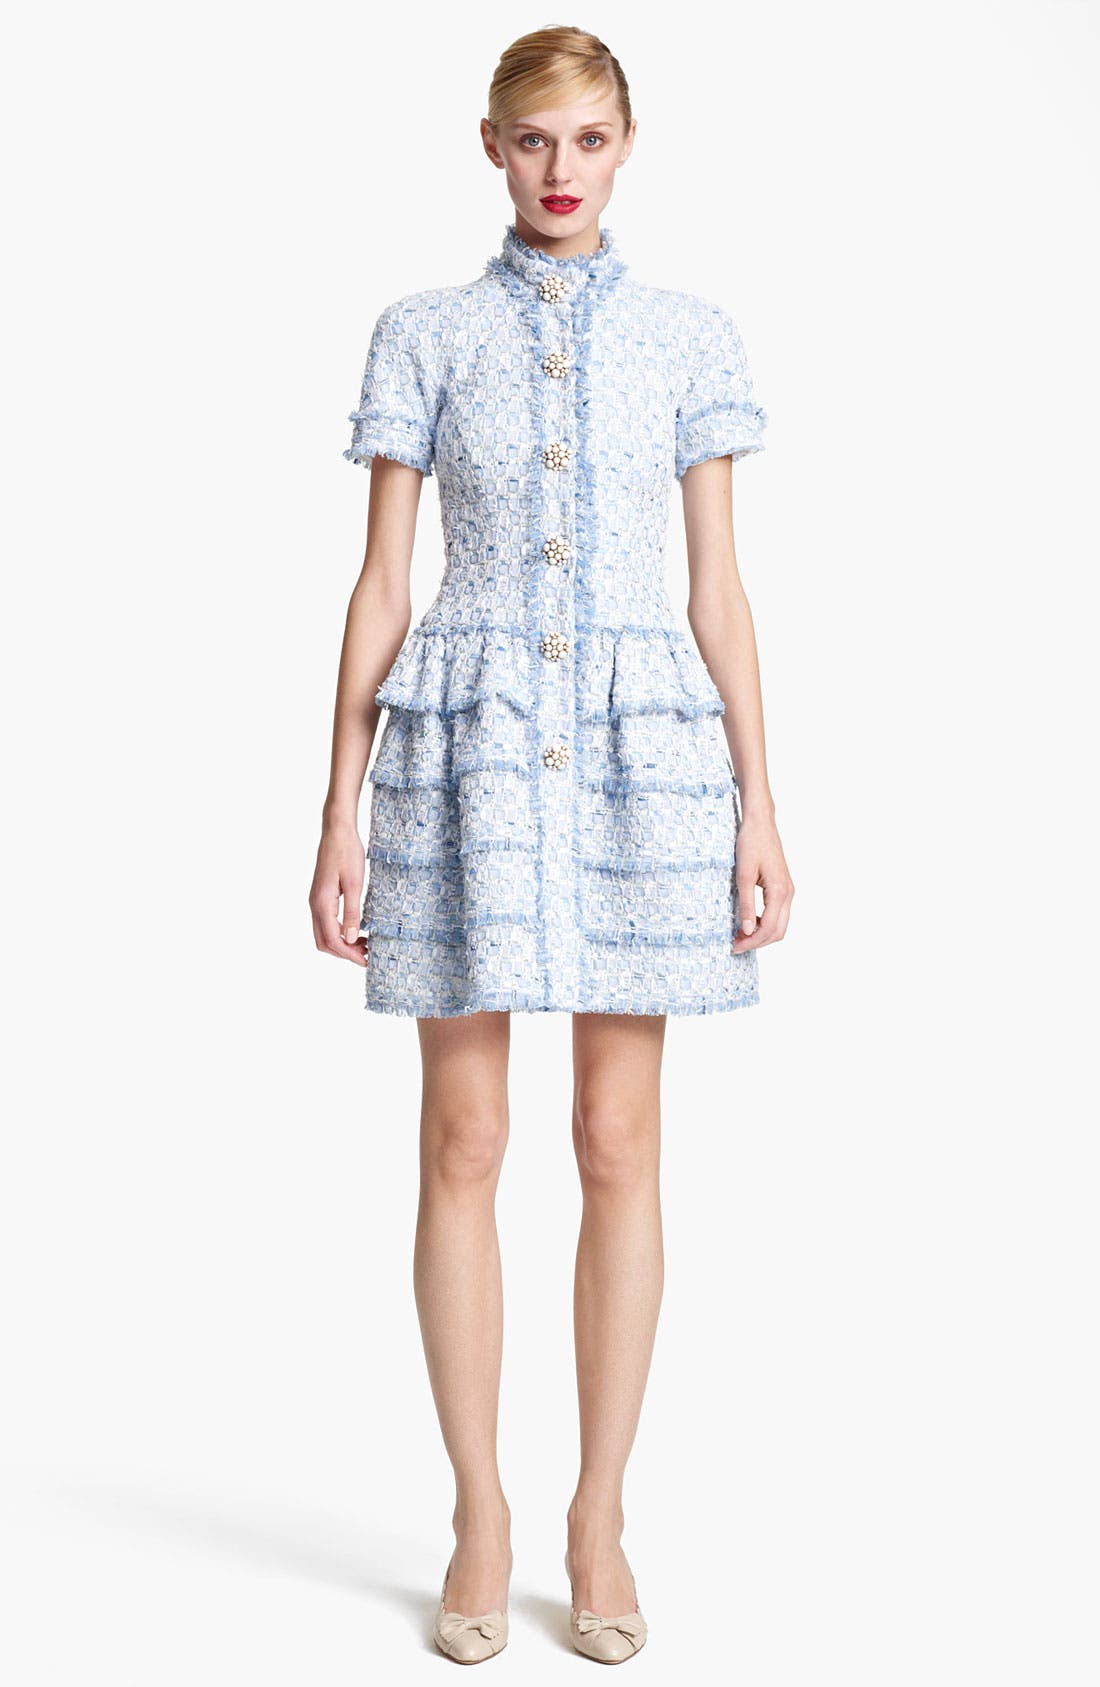 Alternate Image 1 Selected - Oscar de la Renta Tiered Tweed Dress